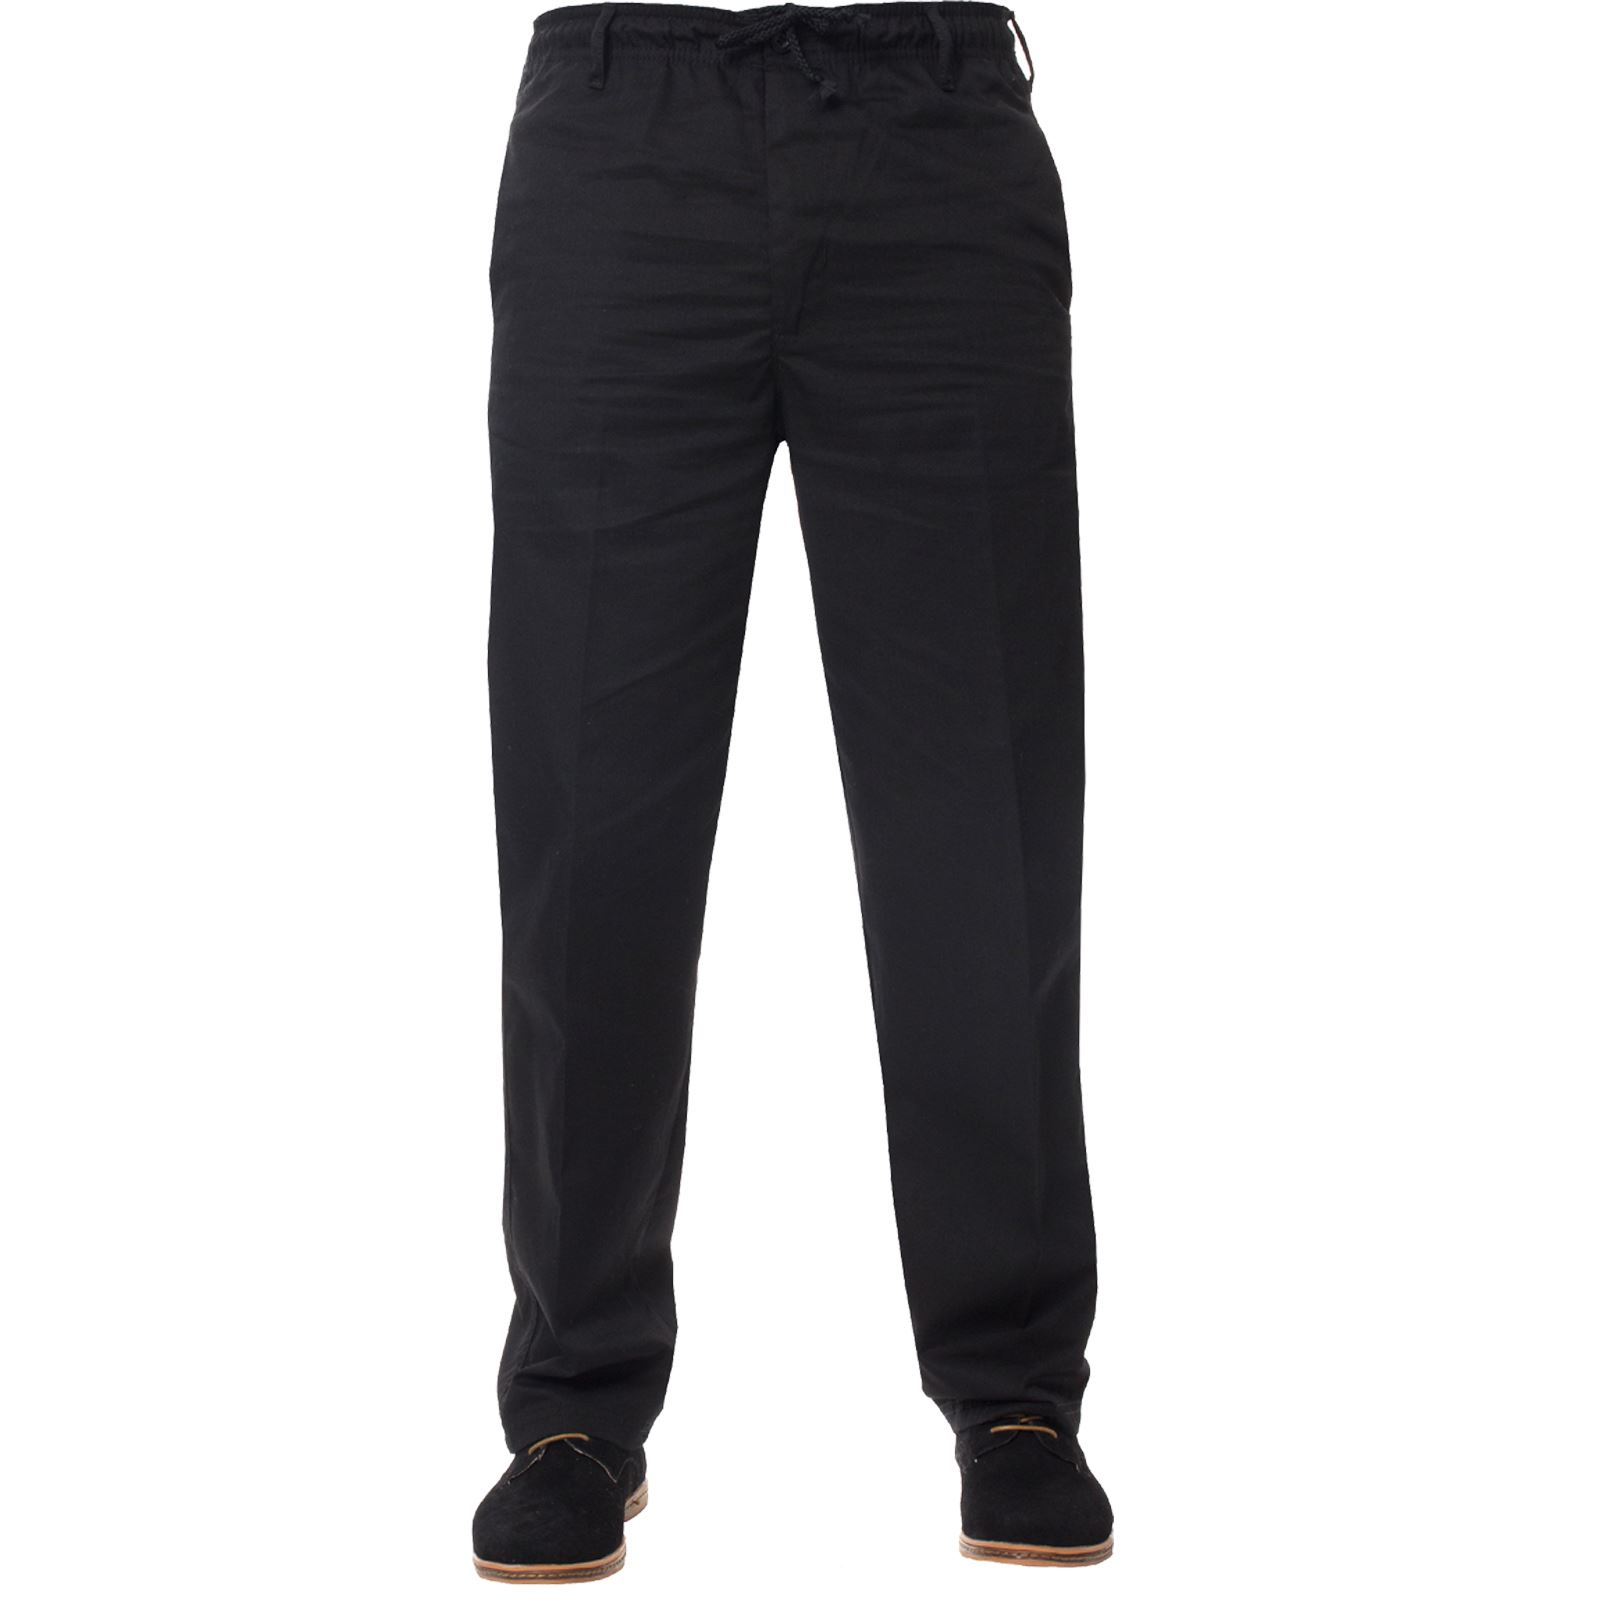 Mens-Rugby-Trousers-Kruze-Elasticated-Waist-Drawstring-Pants-Regular-King-Sizes thumbnail 3